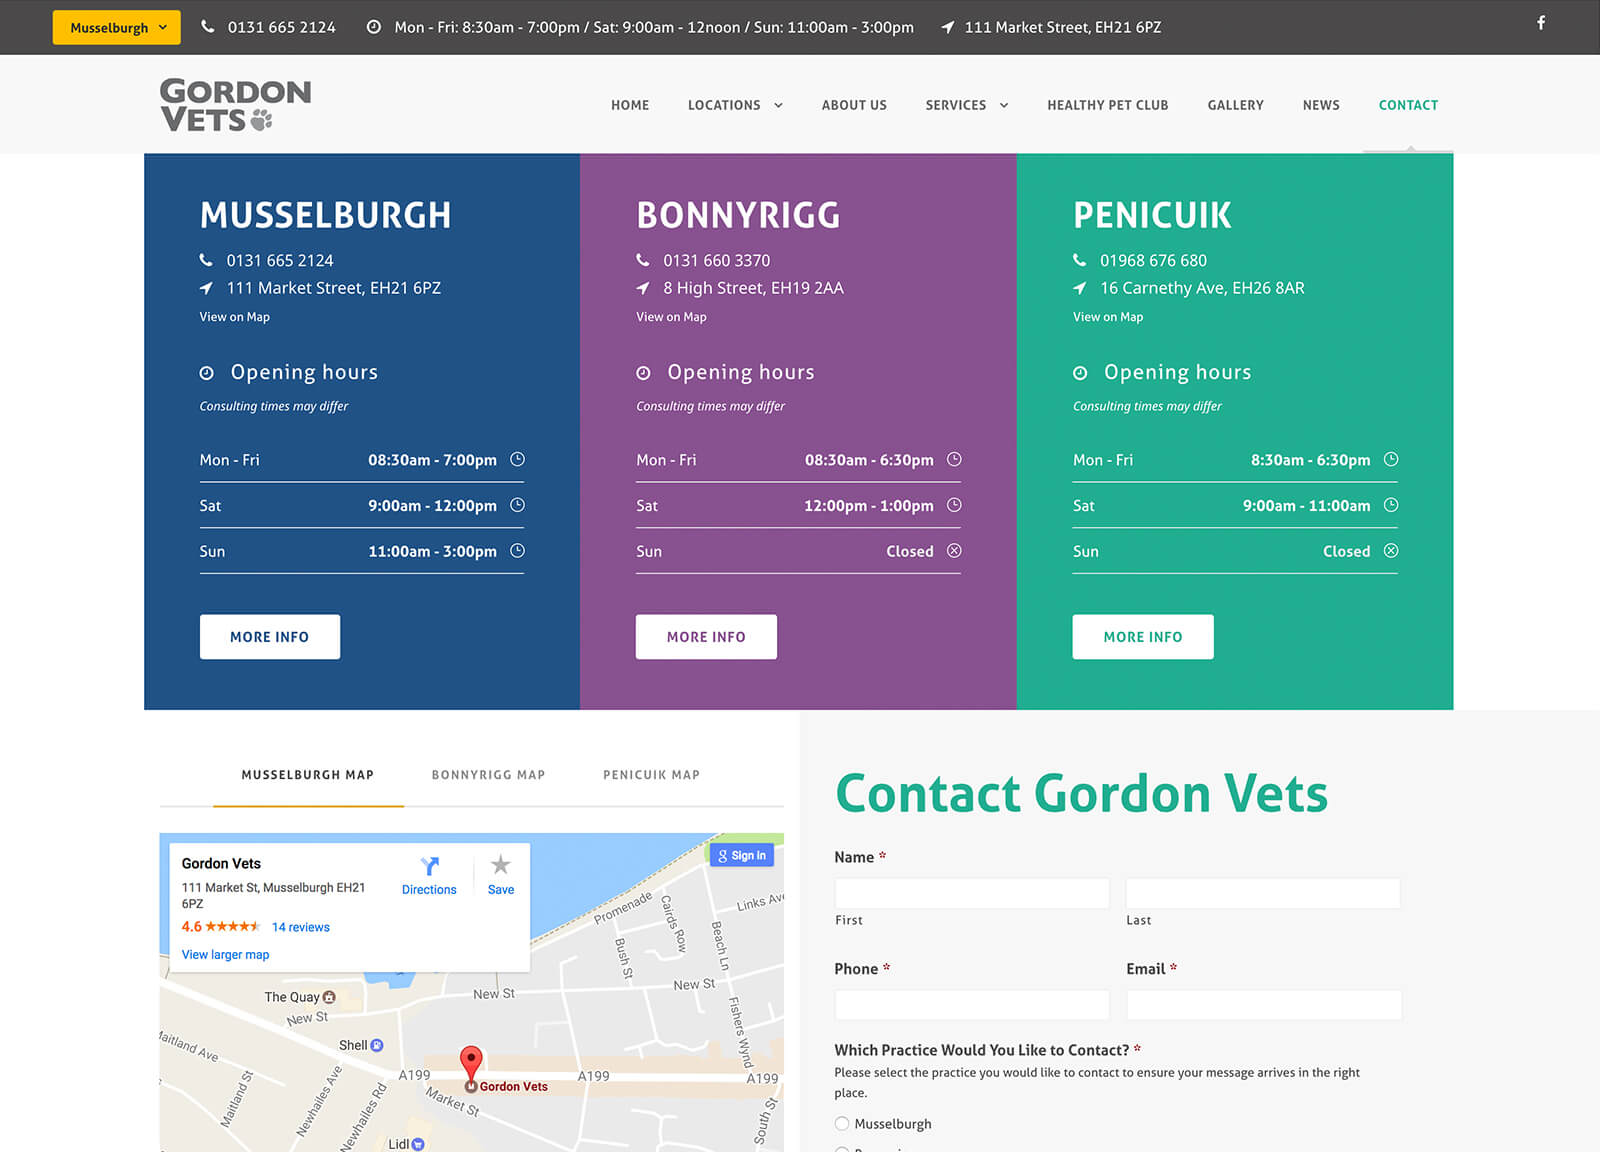 gordon-vets-user-experience